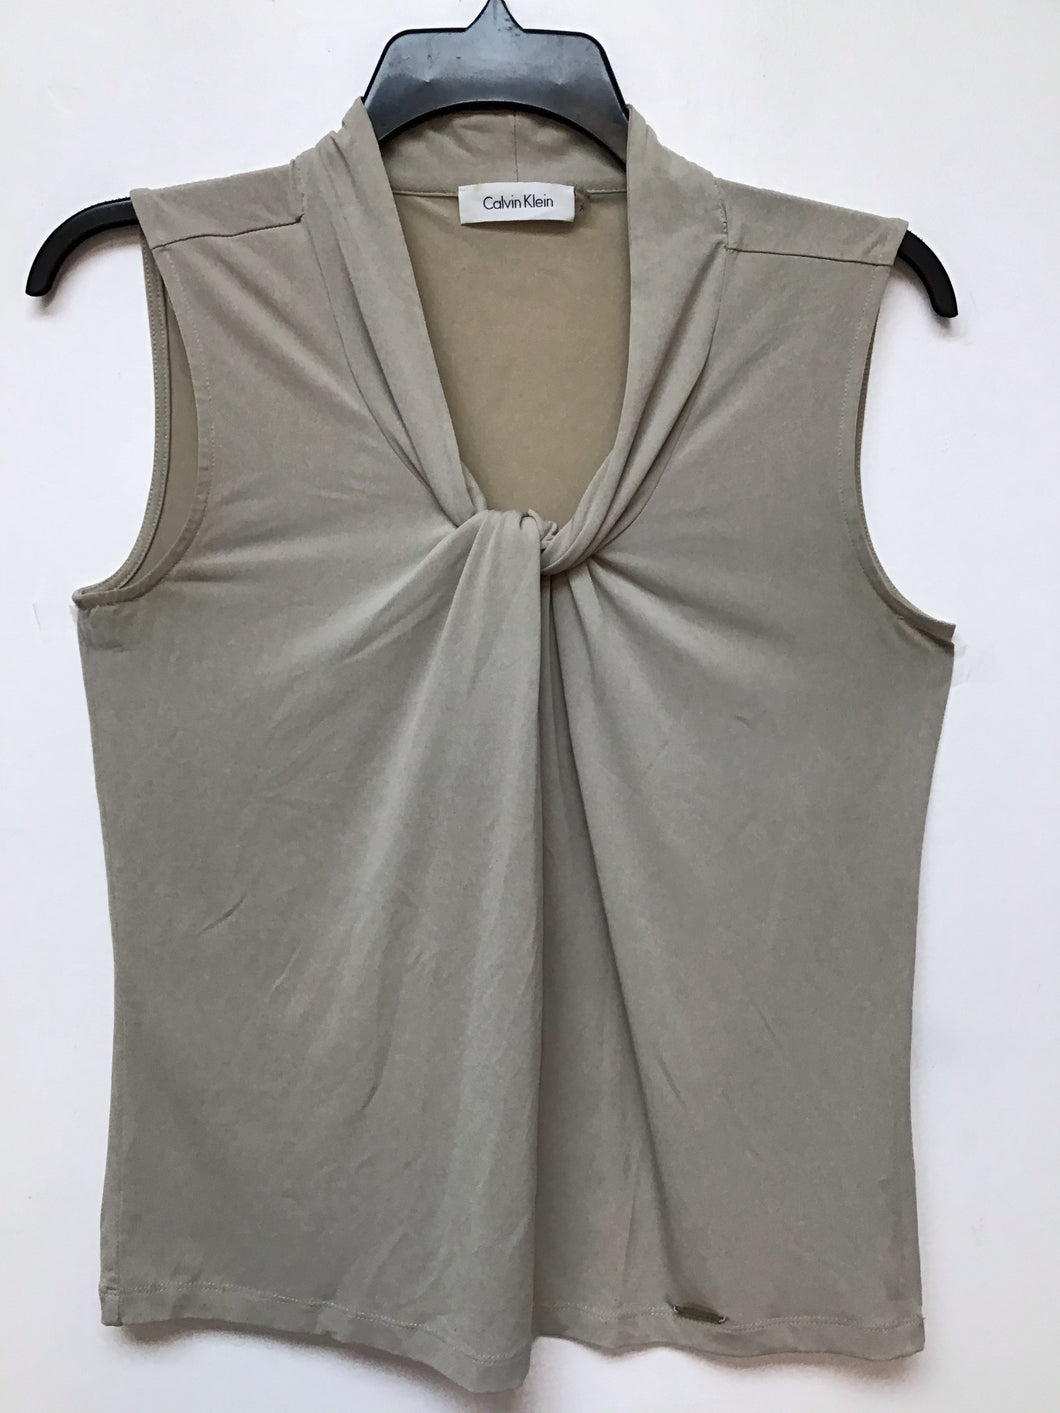 Calvin Klein sleeveless Top - Creme XS